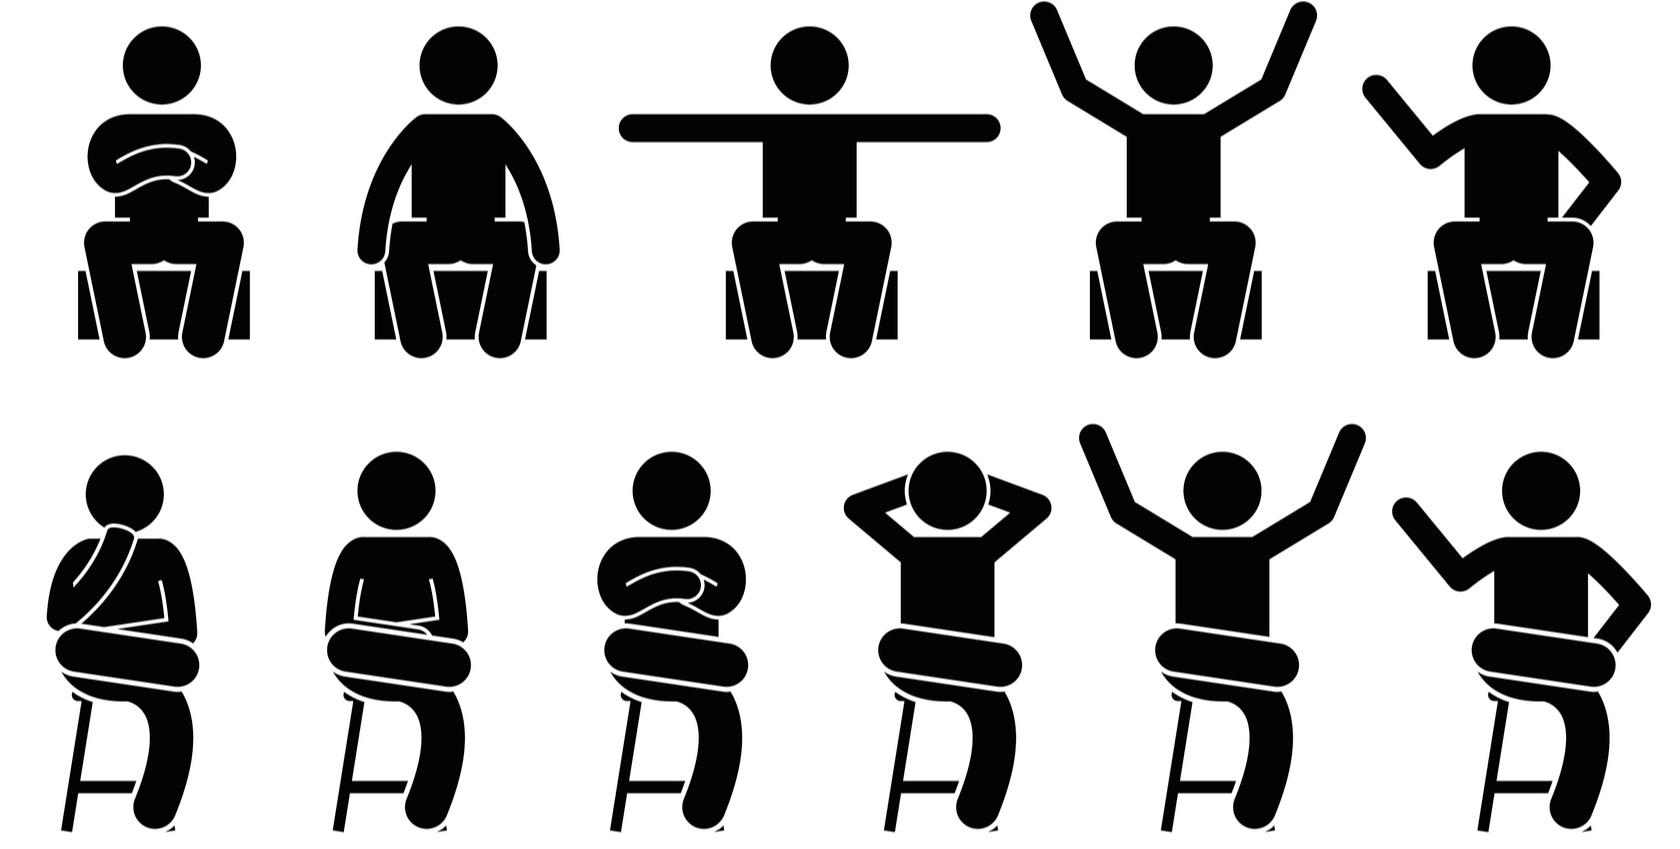 Read: Is It True Posture Makes Perfect?